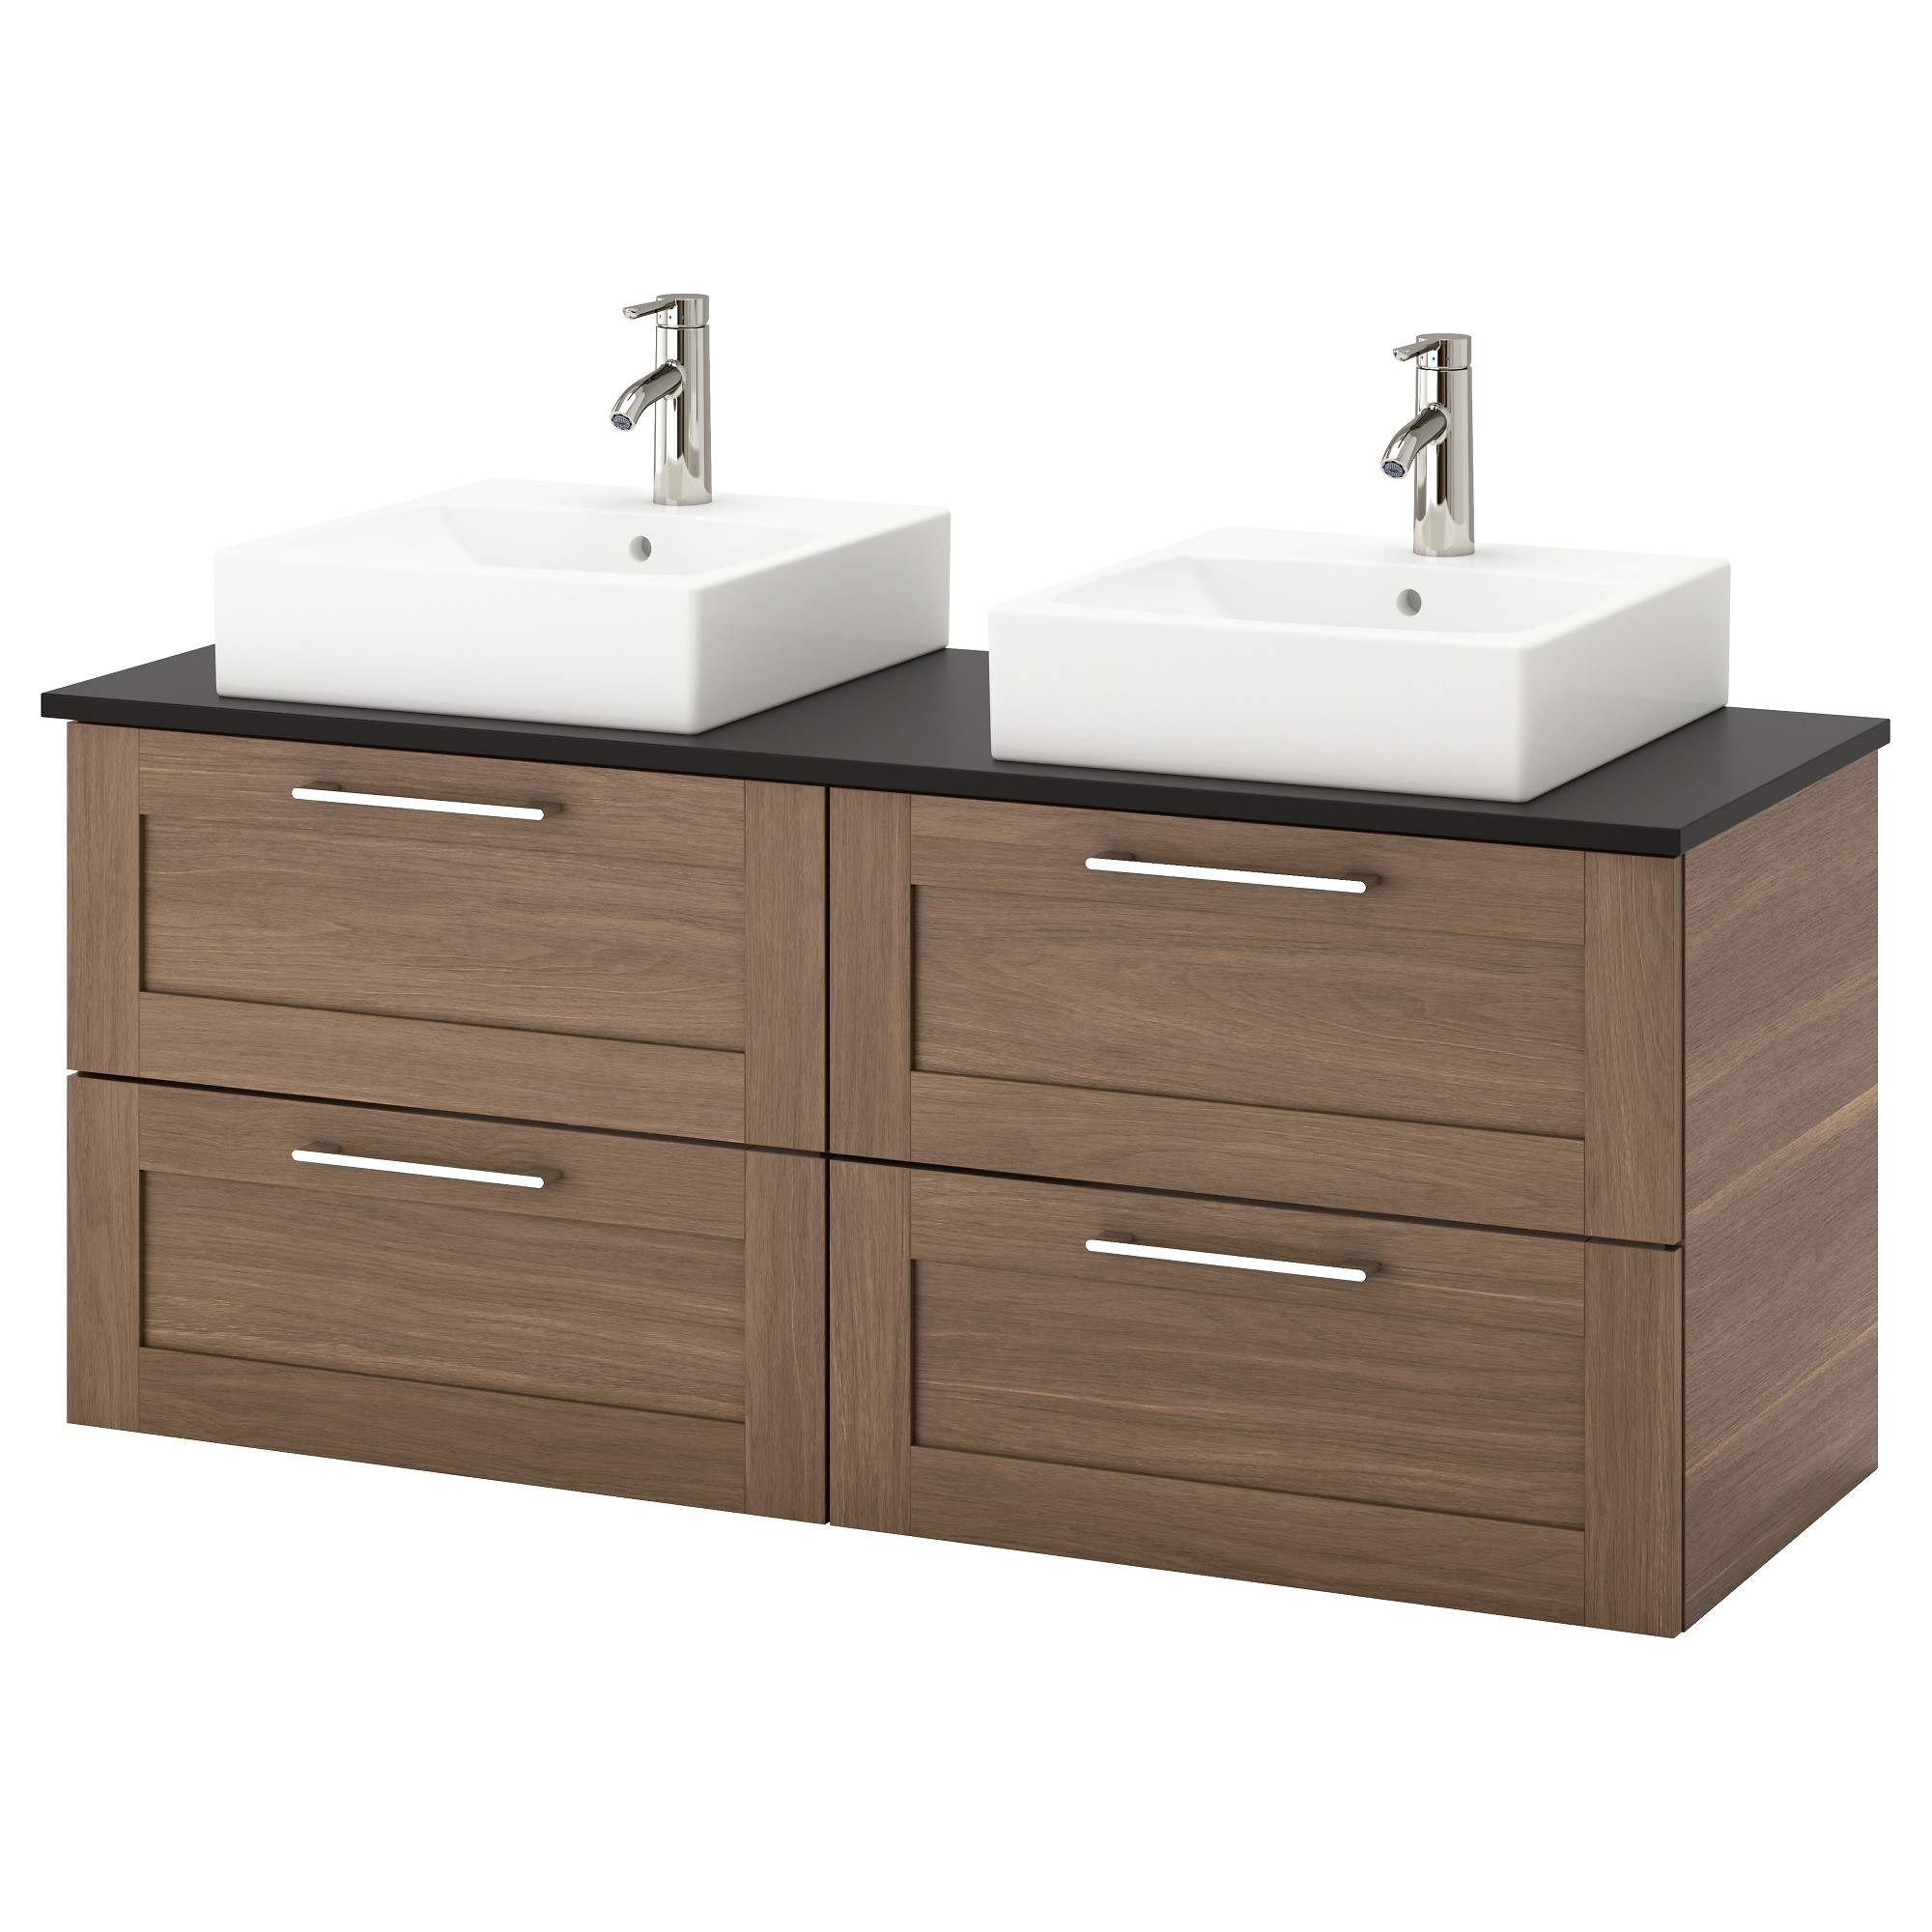 GODMORGON  TOLKEN   T RNVIKEN vanity  countertop and 17 3 4  sink. Bathroom Sink Cabinets   IKEA